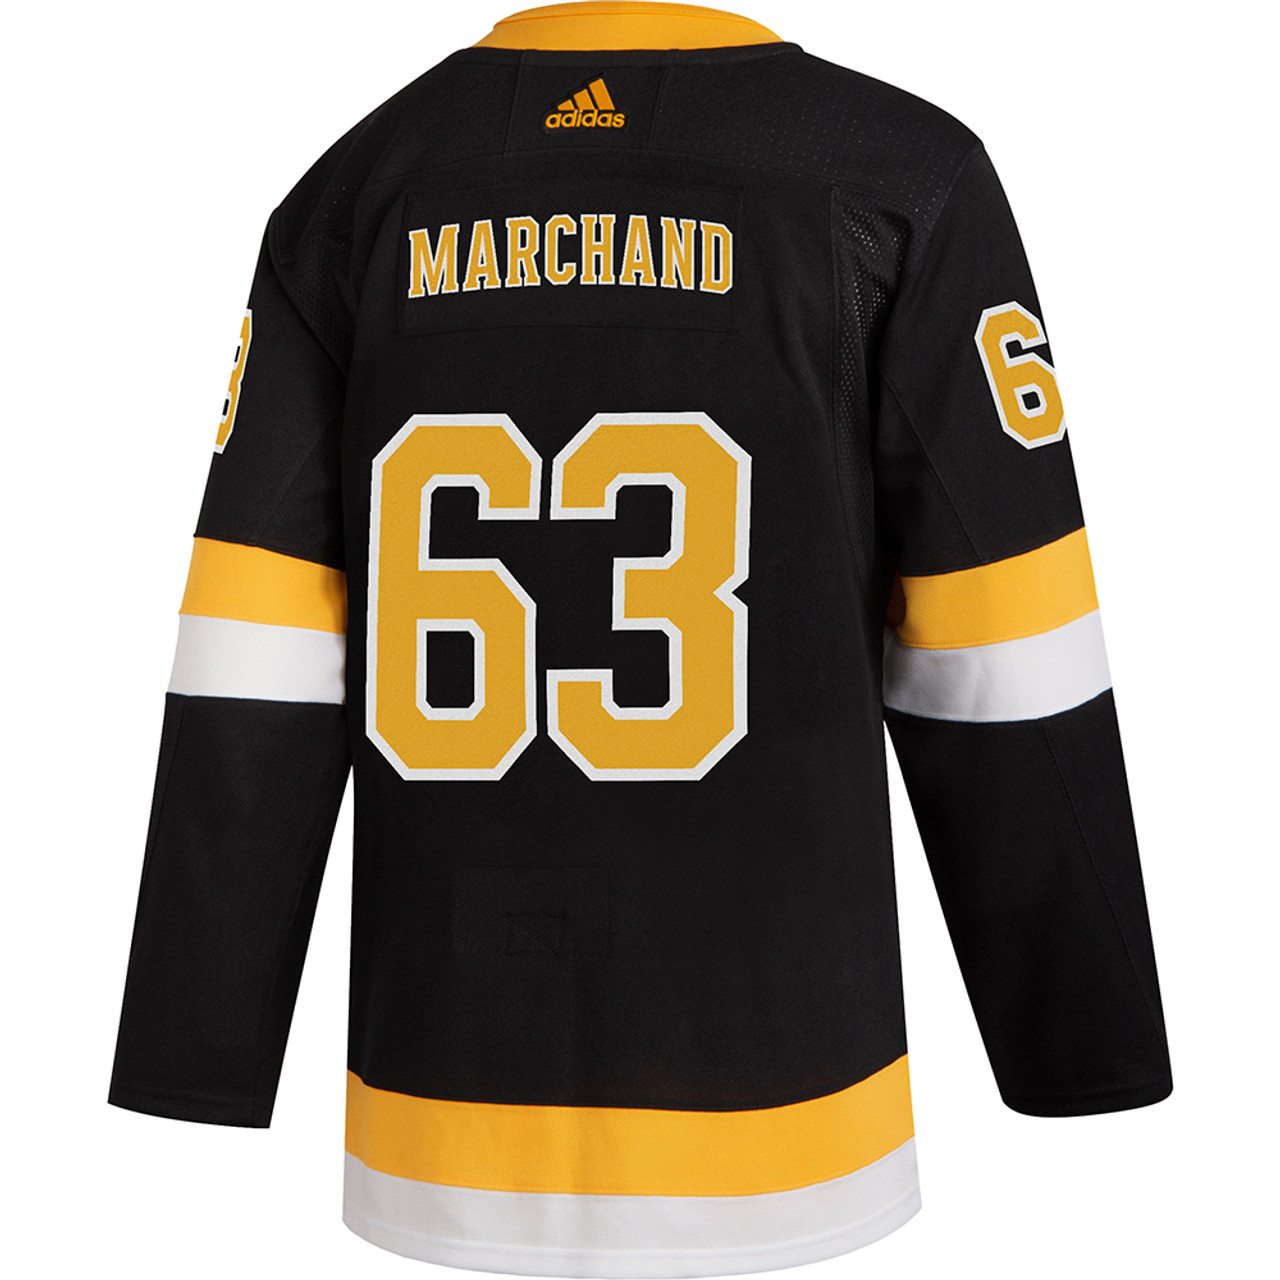 Marchand adidas Authentic Pro Third Jersey